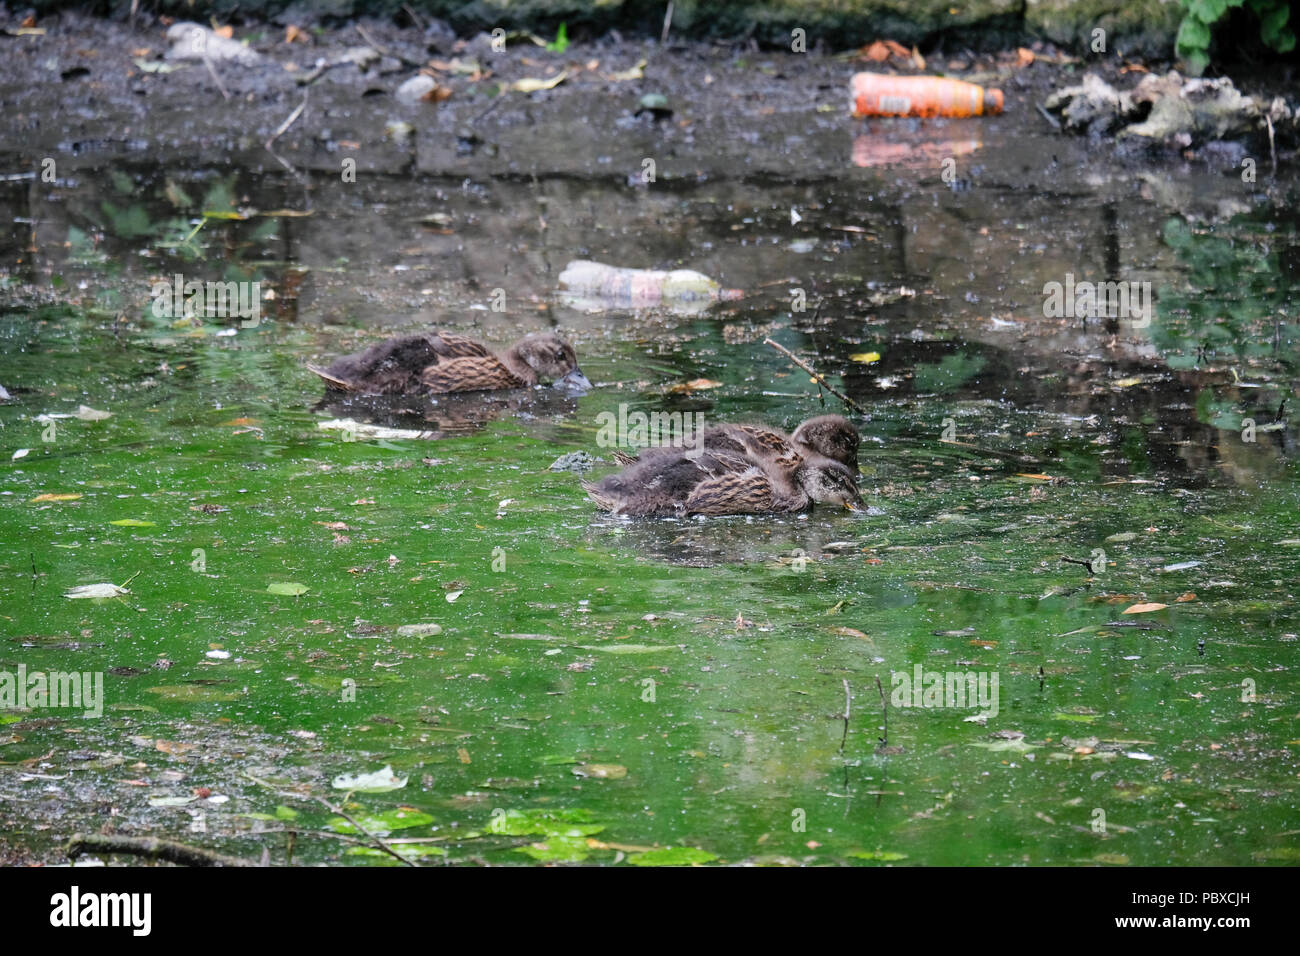 Ducks and ducklings swimming on the pond by Valley Bridge